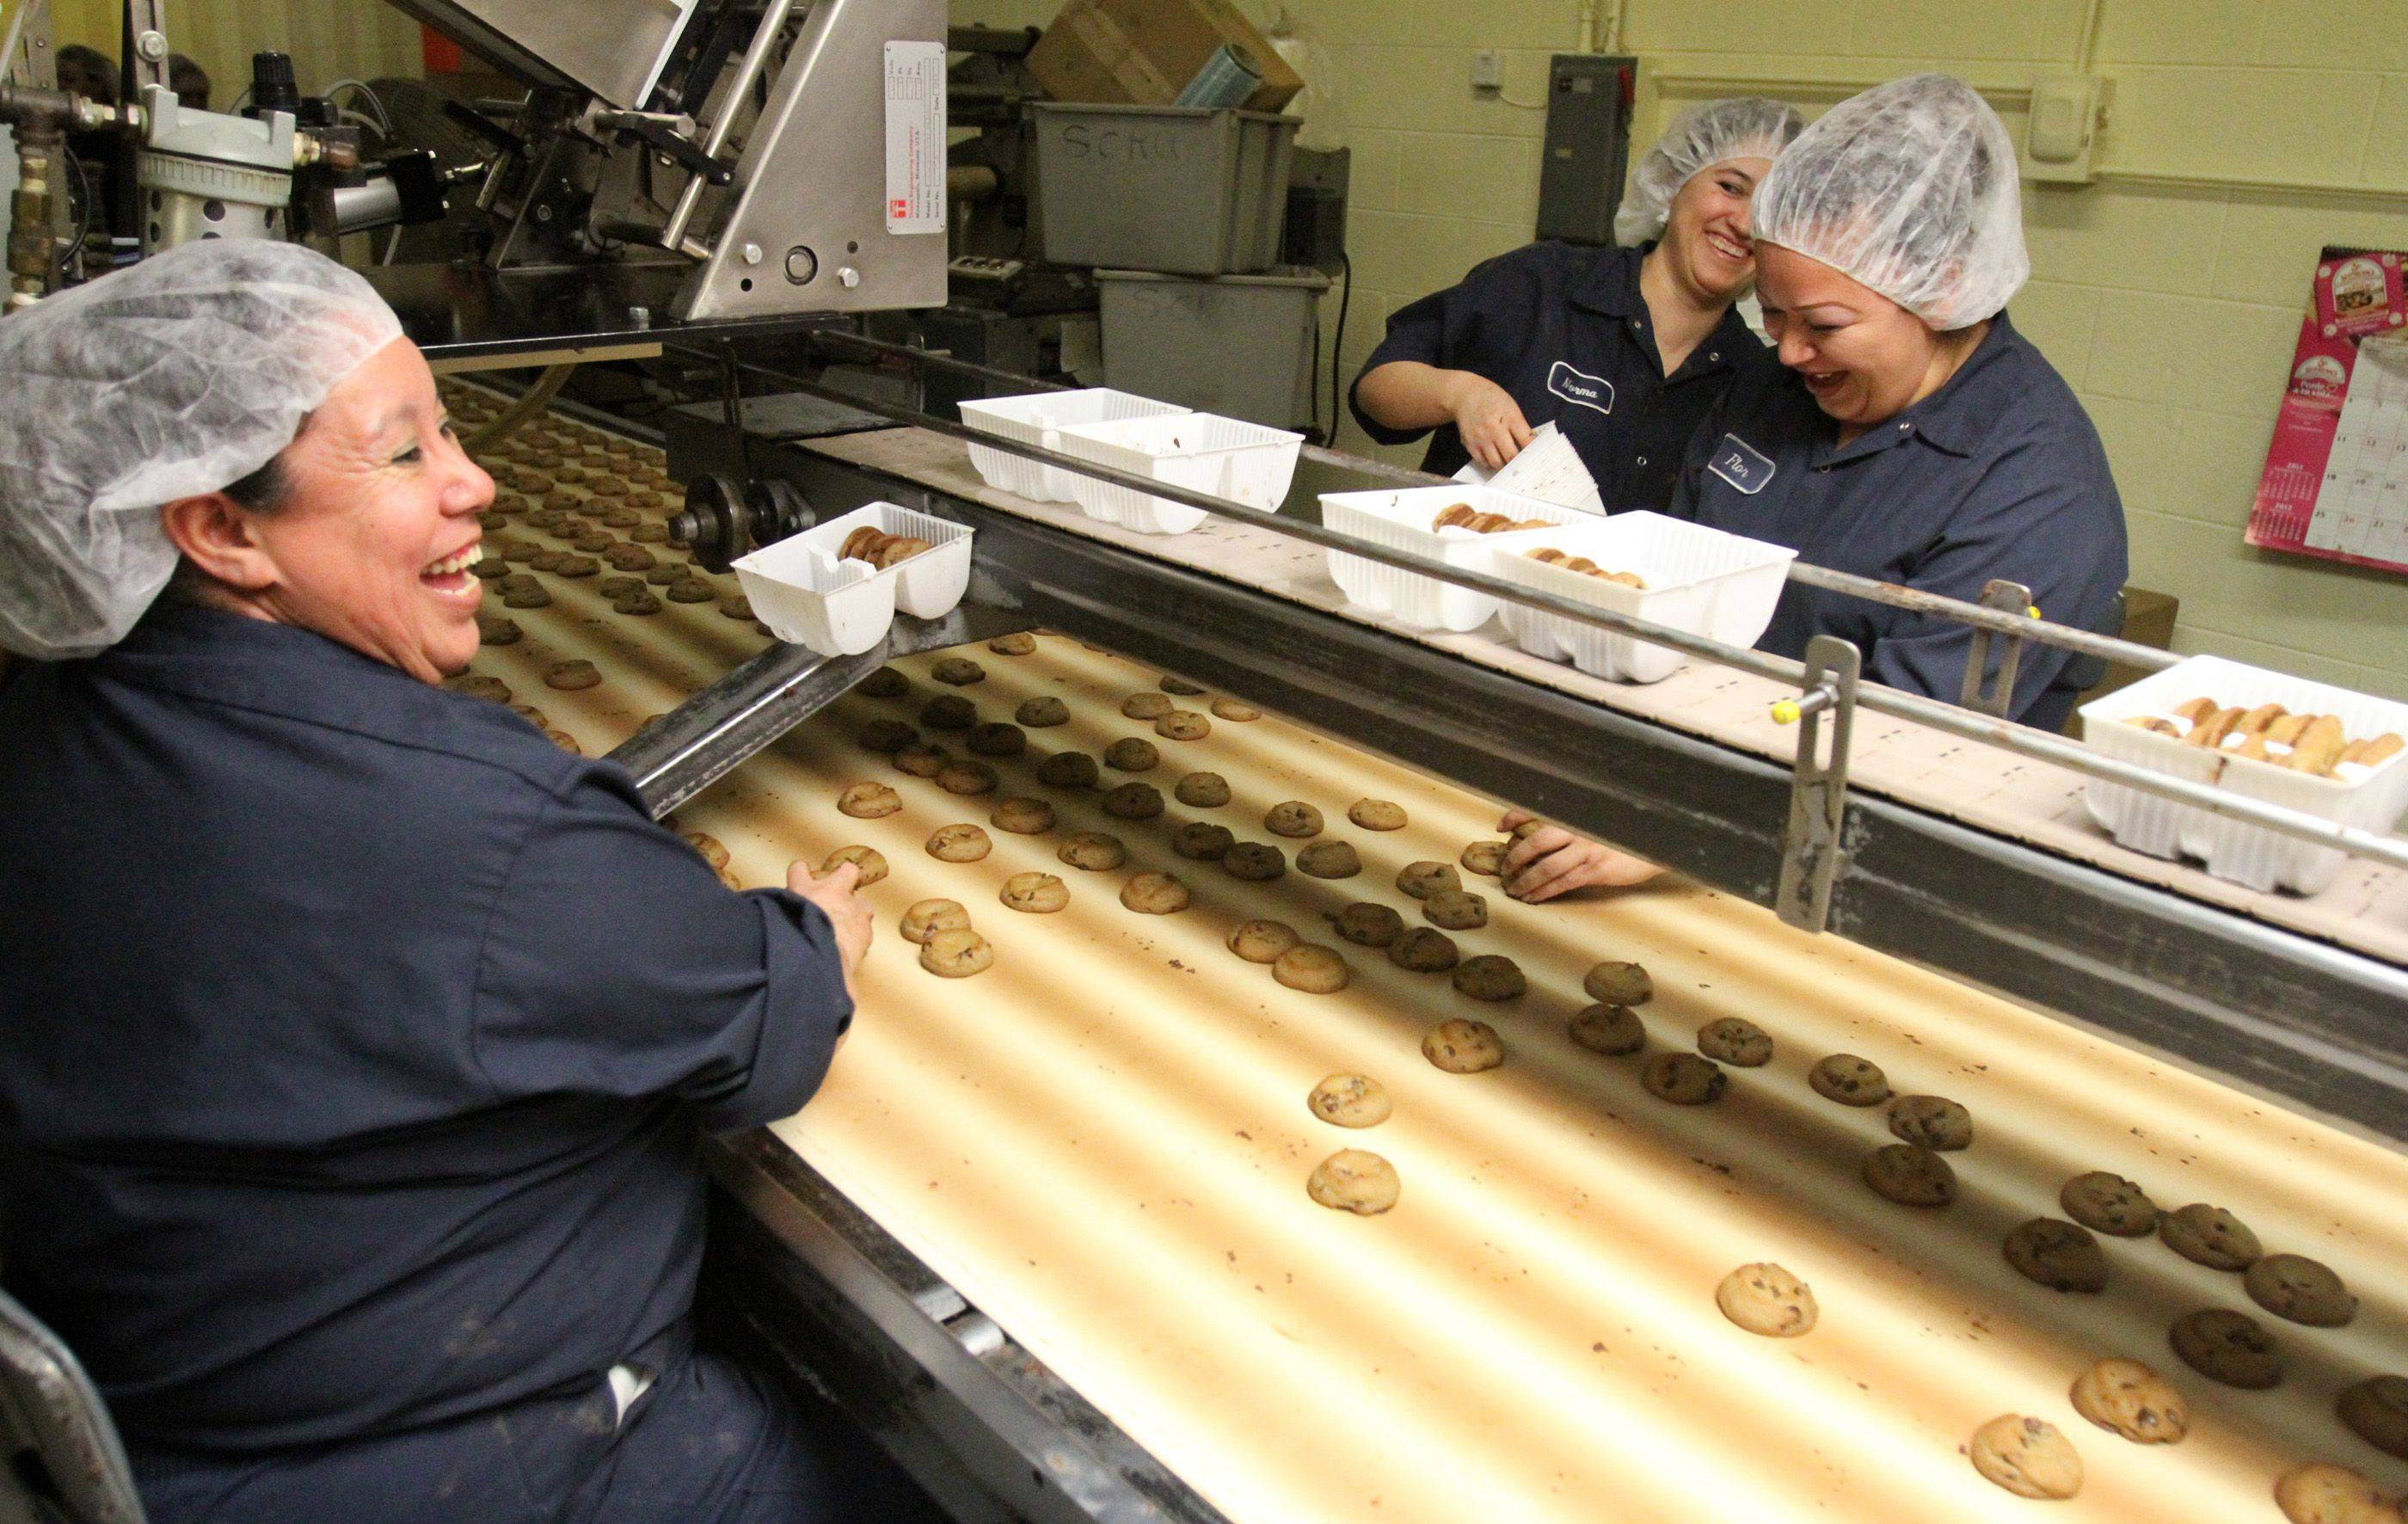 Matt's Cookies in Wheeling has 22 employees make their cookies and 25 to distribute them to area stores. Matt Pierce said all of the cookies have to be hand packaged because they are made just like people make them at home and therefor are different sizes and shapes.